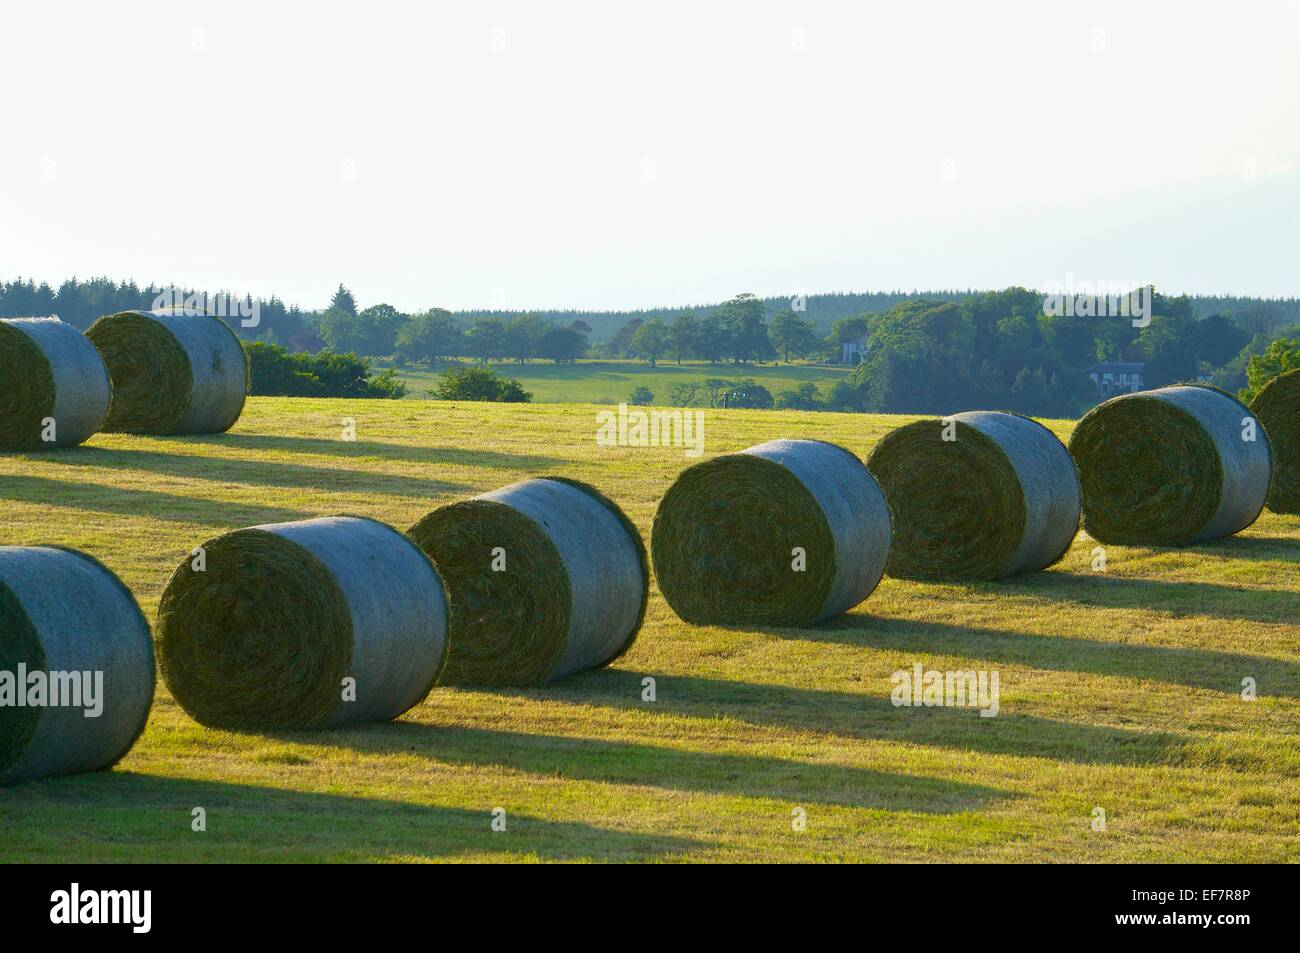 Silage bales in a field. Gilsland, Cumbria, England, UK. Stock Photo